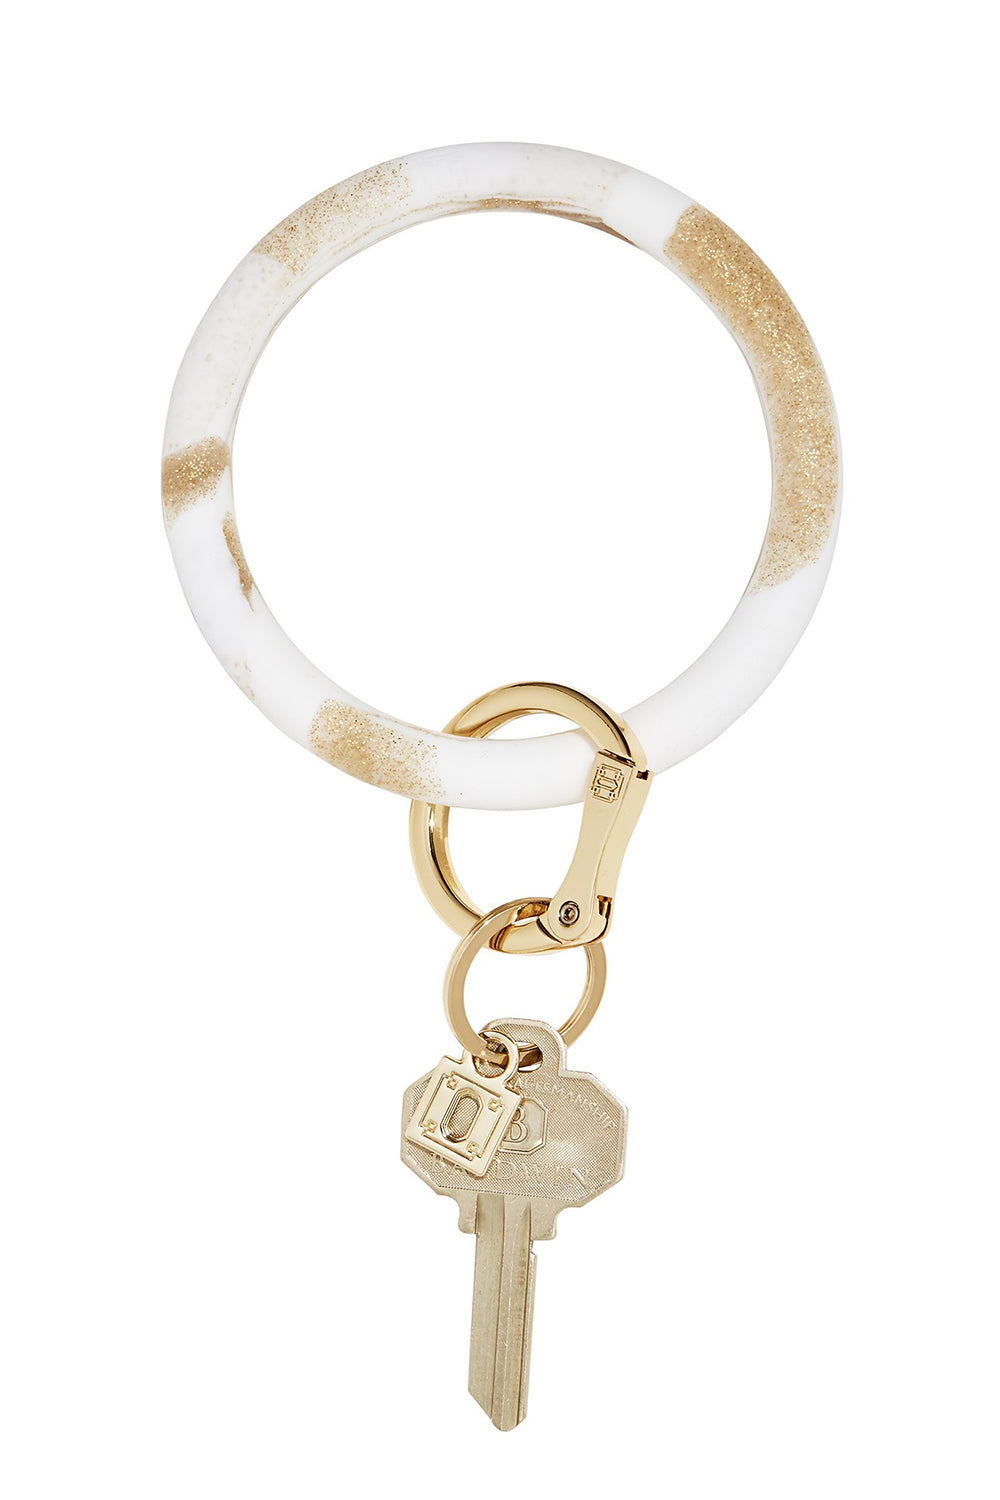 The BIG O Key Ring *Silicone* - Marble Gold Rush